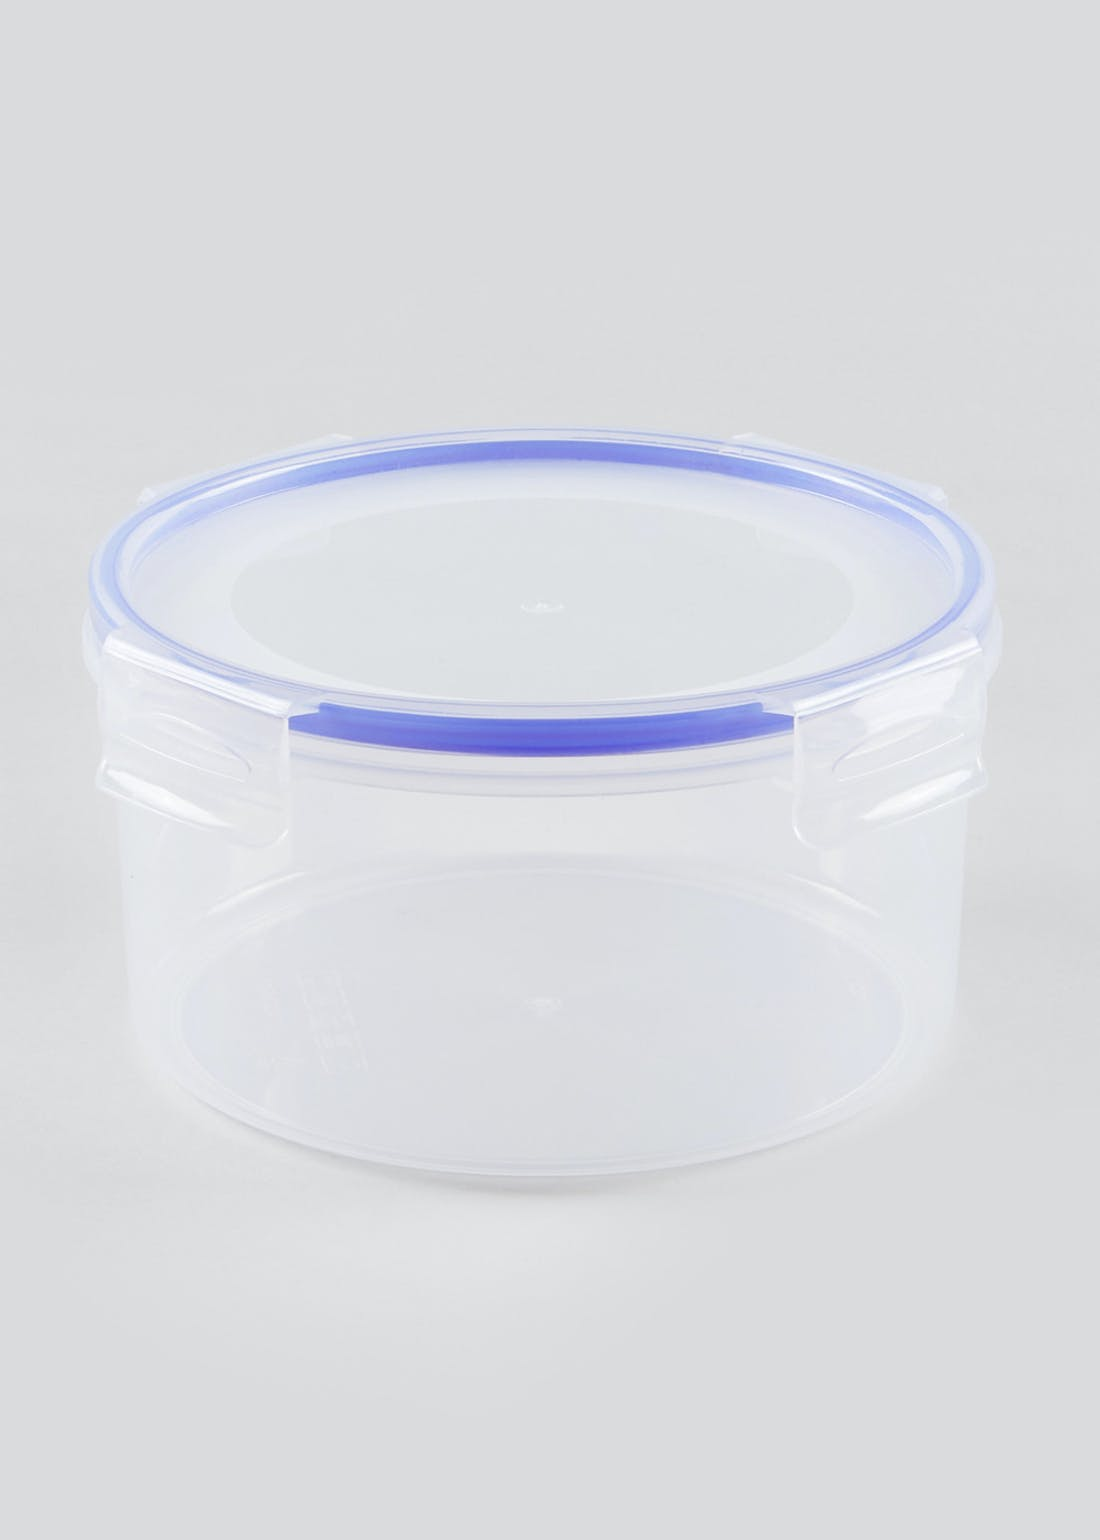 Circular Food Storage Box (17cm x 9cm)